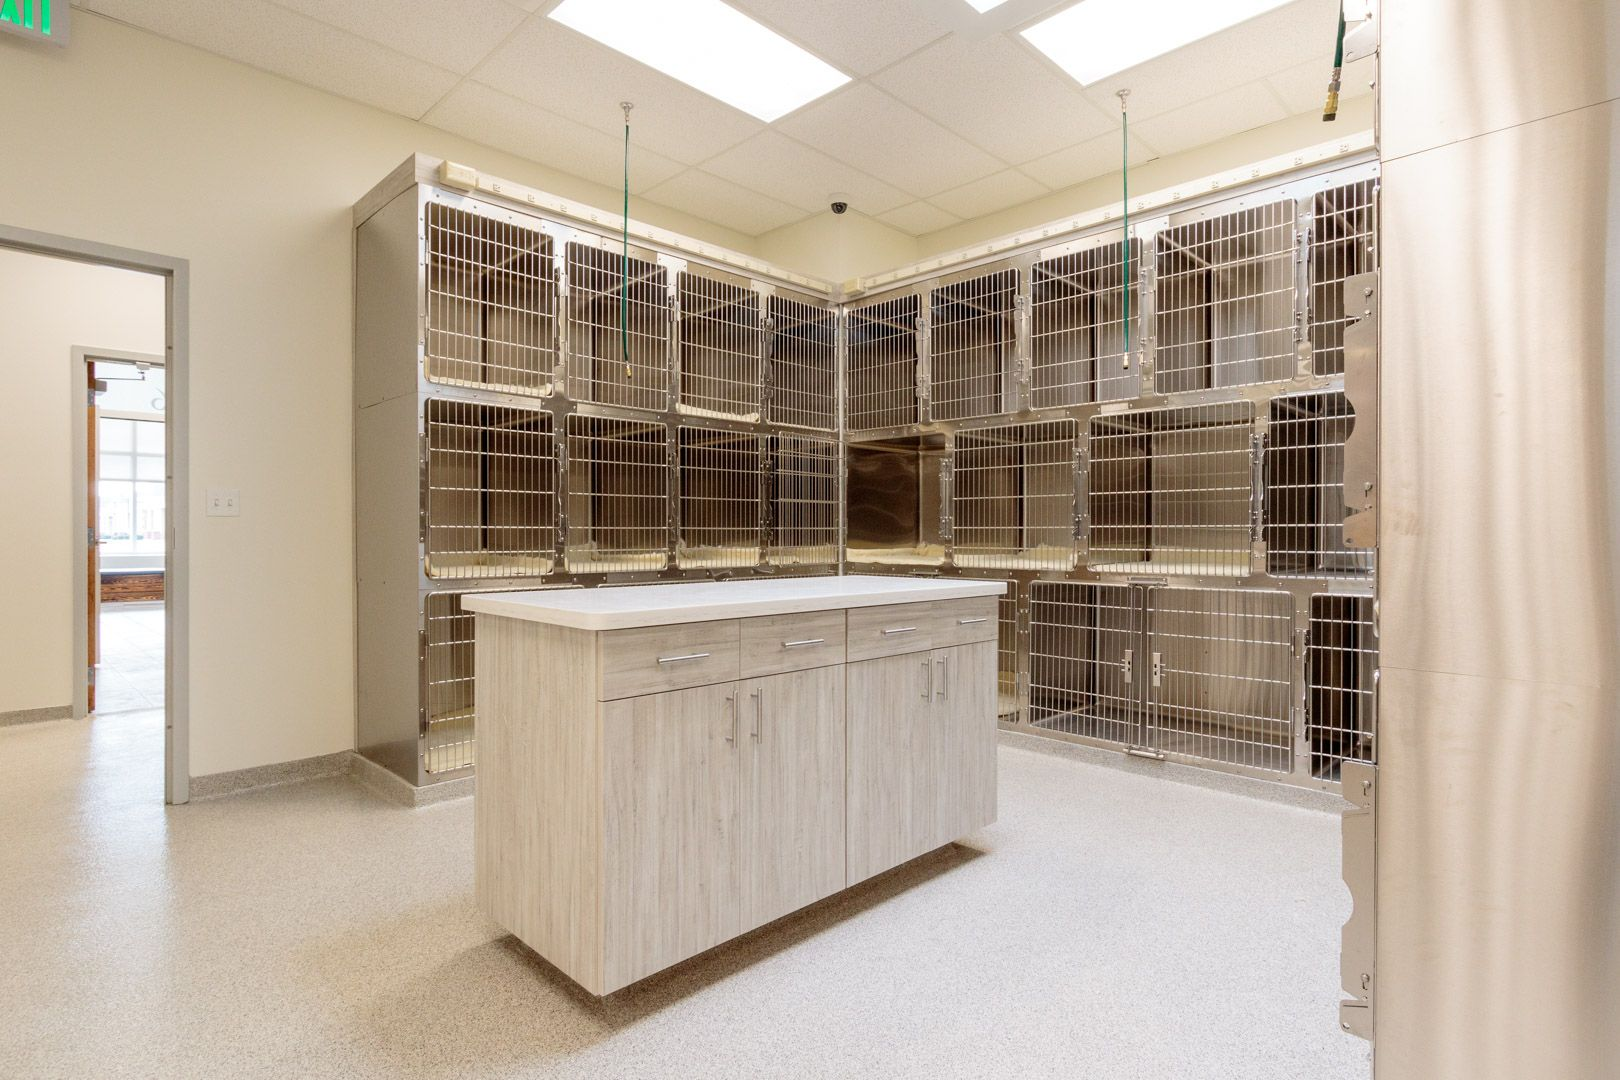 Coyne Veterinary Center Pet Icu For Hospitalized Patients And Recovering Surgical Patients Care Facility Home Decor Veterinary